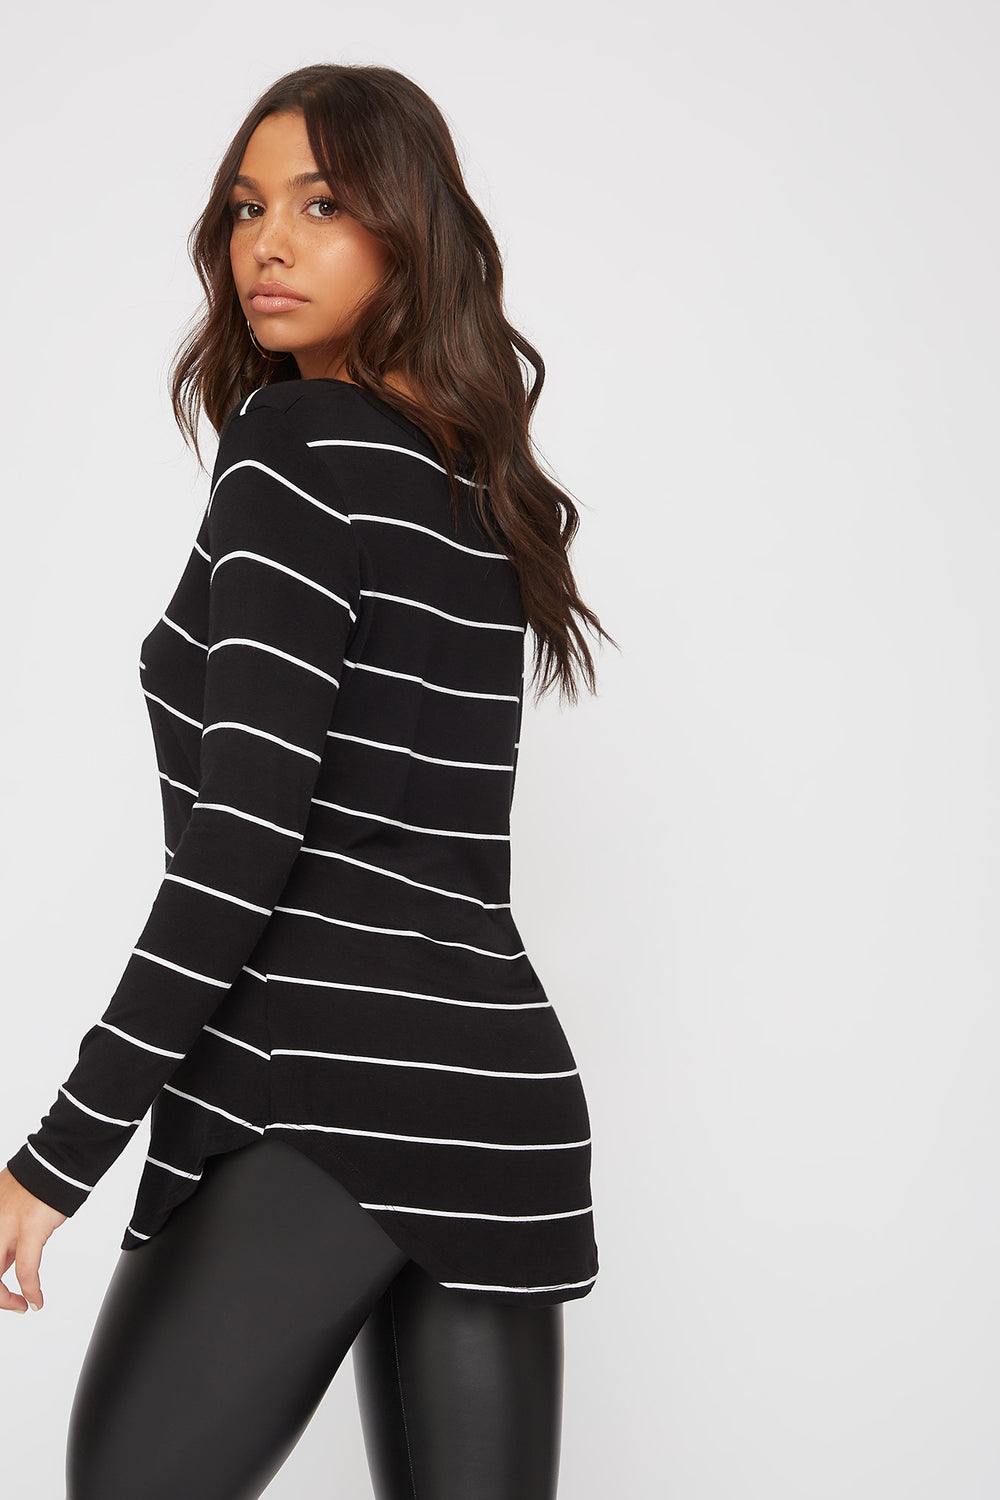 V-Neck Long Sleeve Black with White